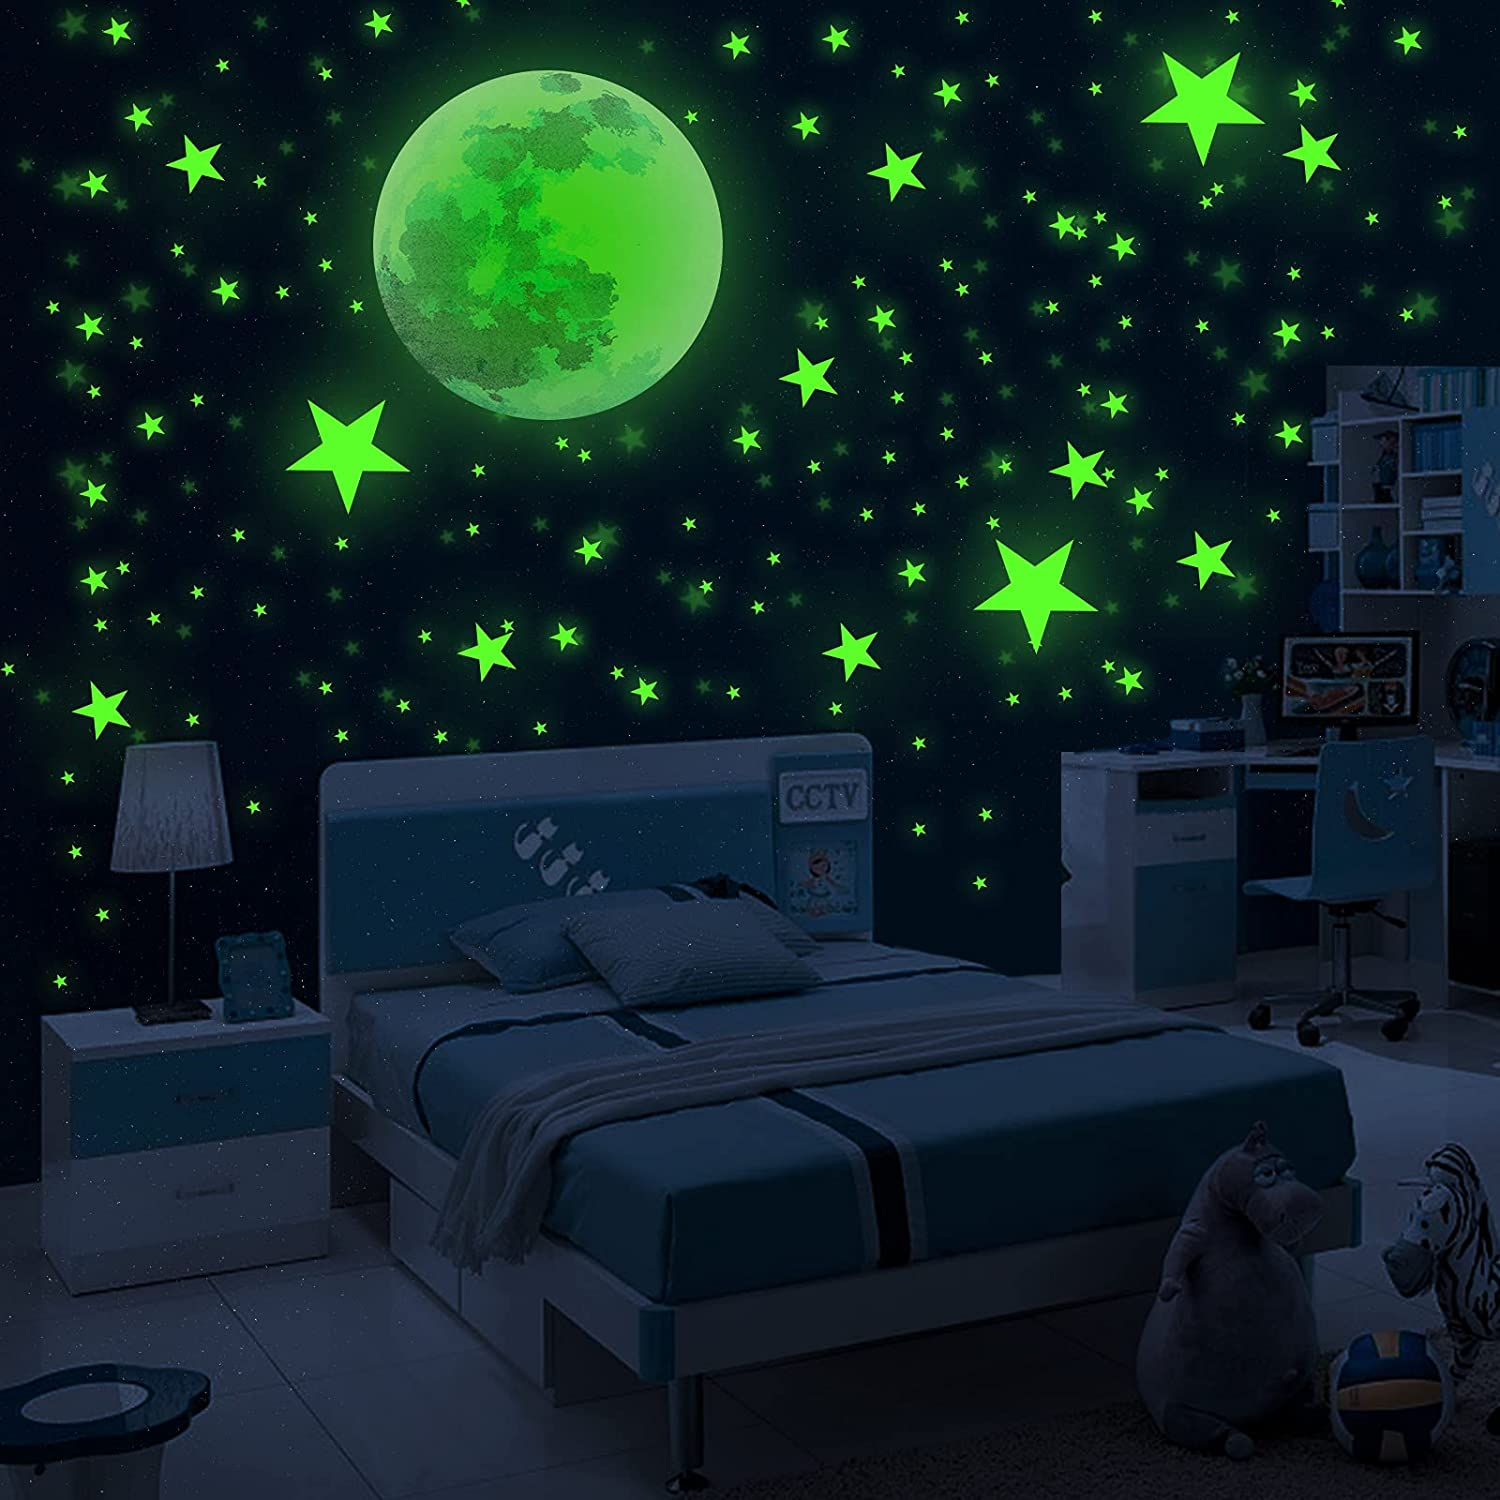 912 Pcs Glow in The Dark Ceiling Adhesive 912PCS for Stars Wall safety SALENEW very popular!